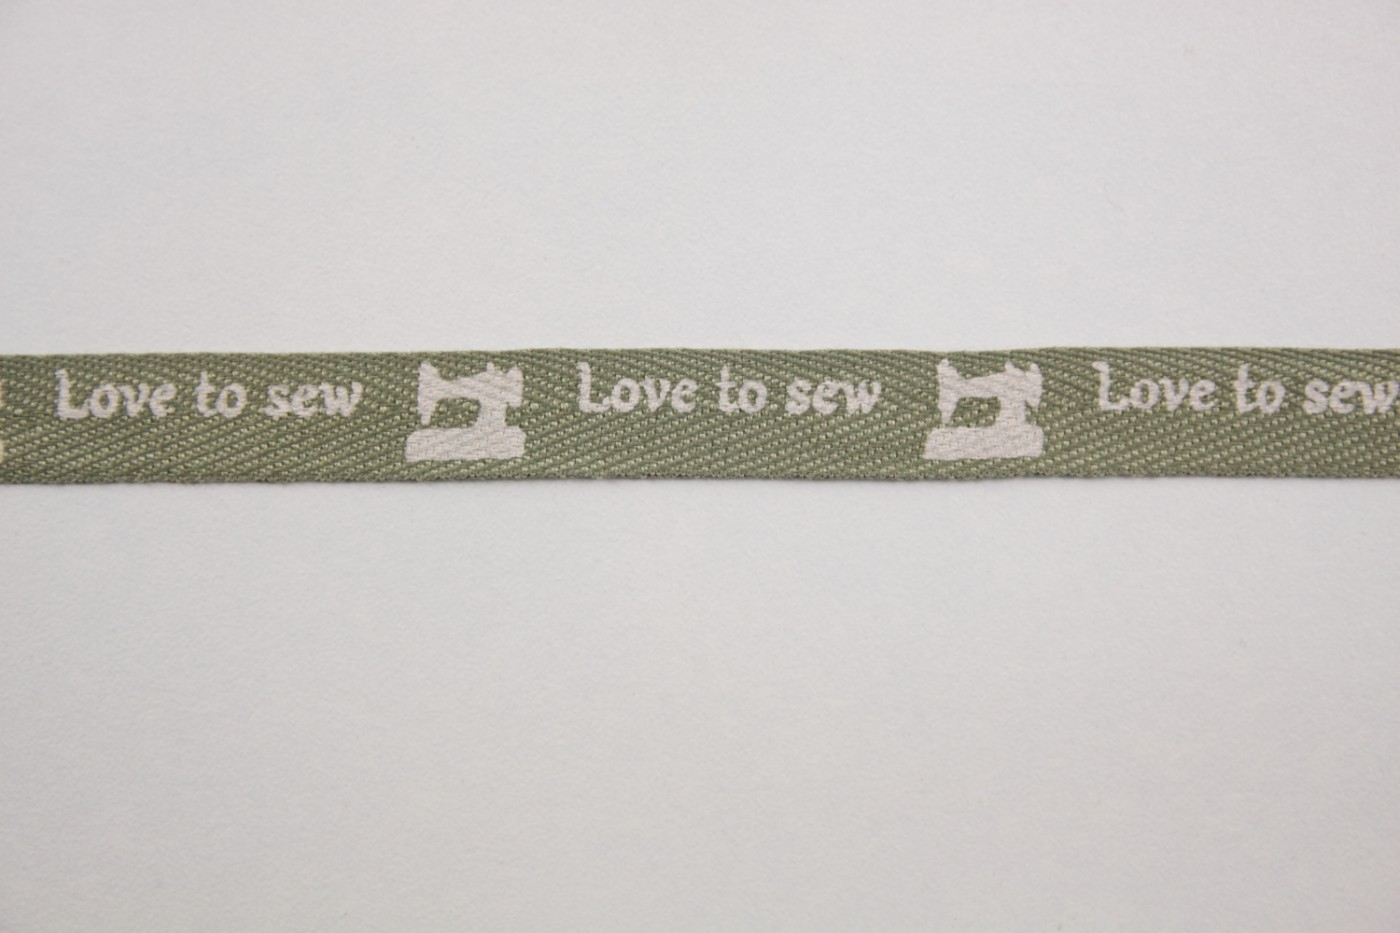 legergroen-love to sew-naaimachines-11mm